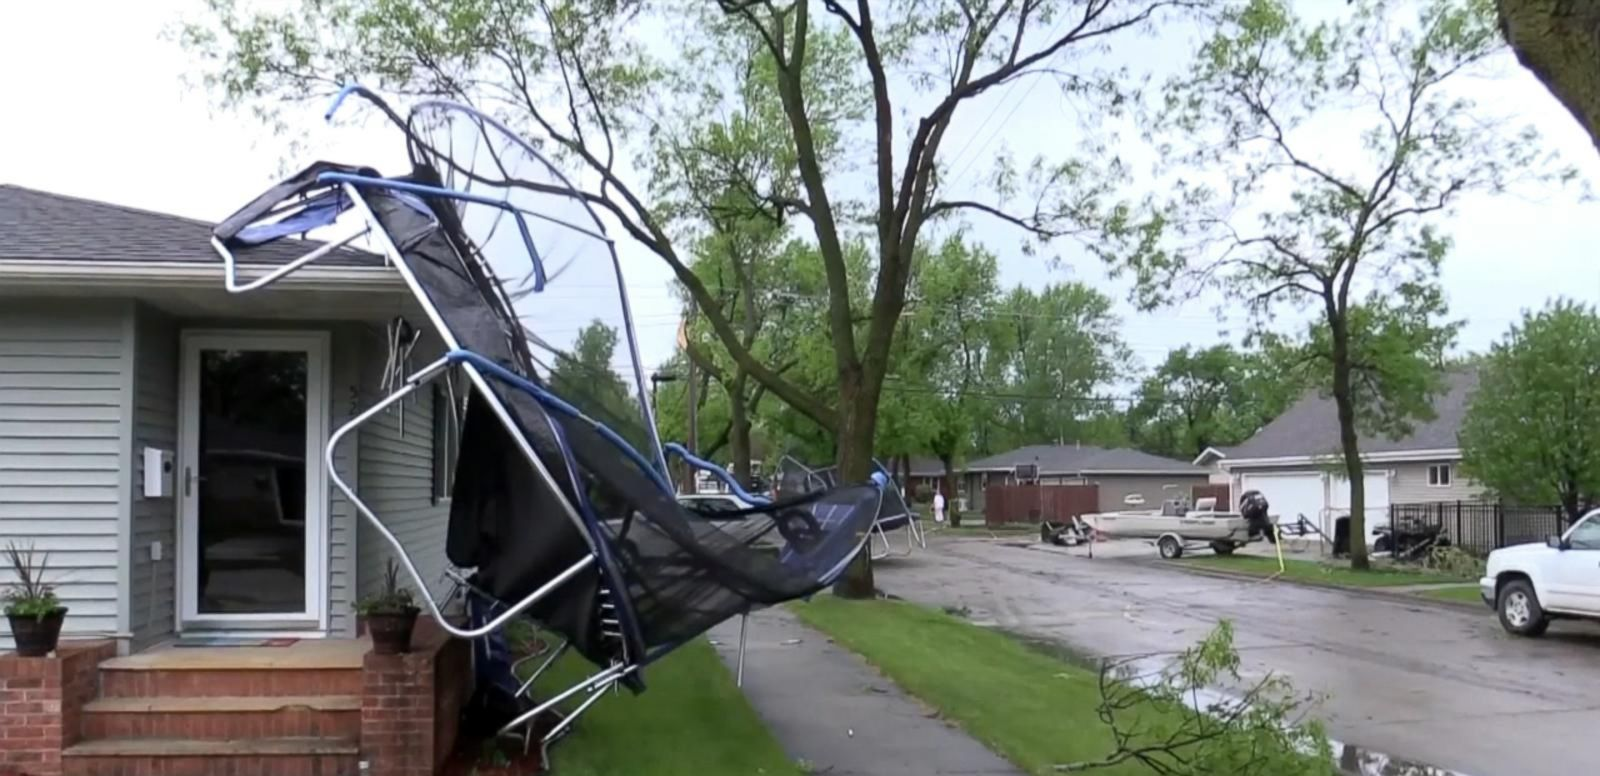 VIDEO: Powerful Winds Snap Trees, Damage Homes in North Dakota